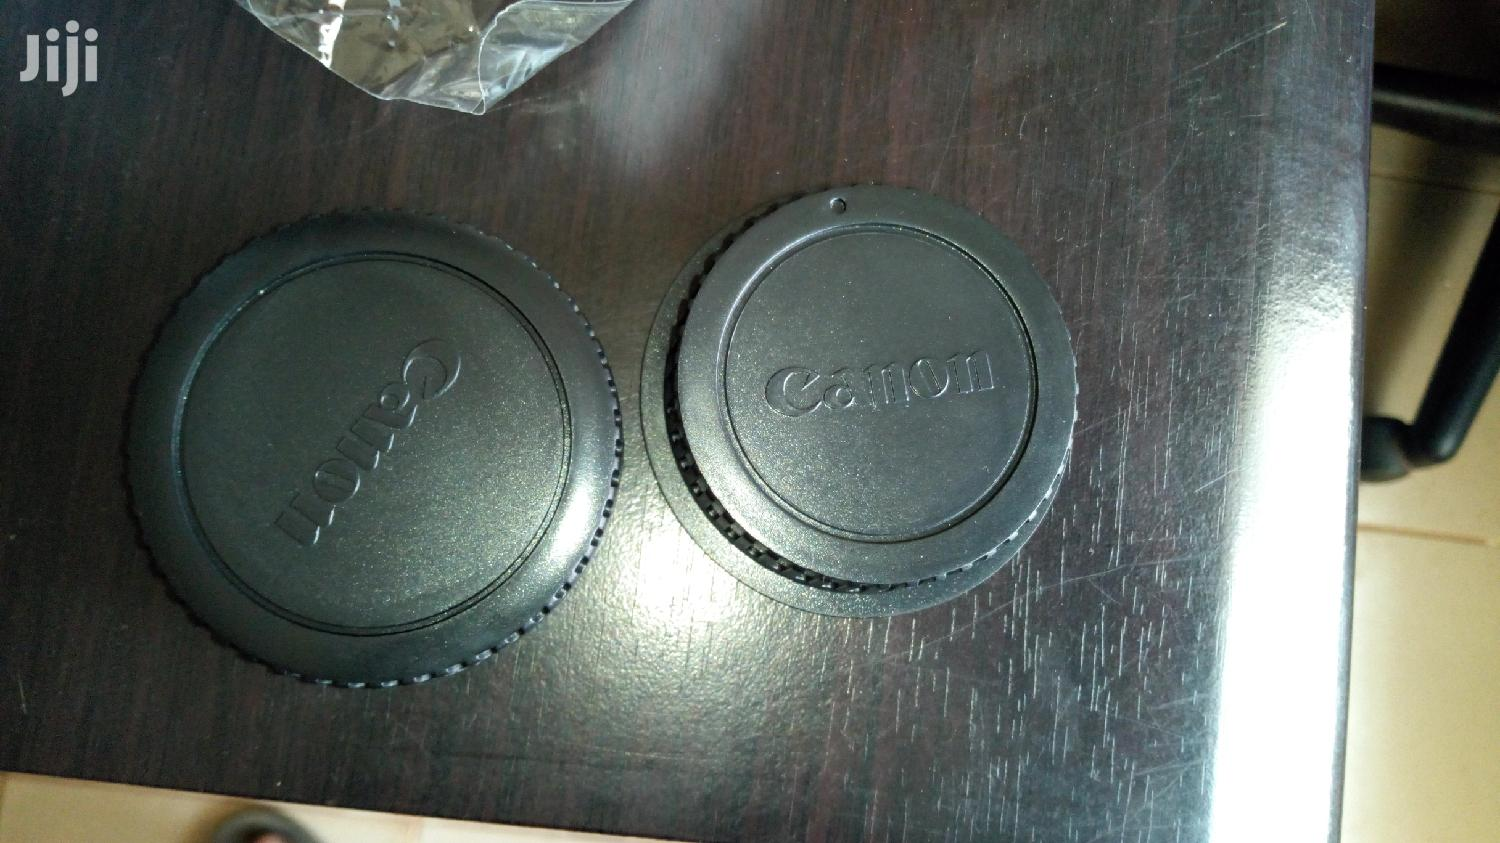 Canon Dslr Camera Lens Covers | Accessories & Supplies for Electronics for sale in Kampala, Central Region, Uganda